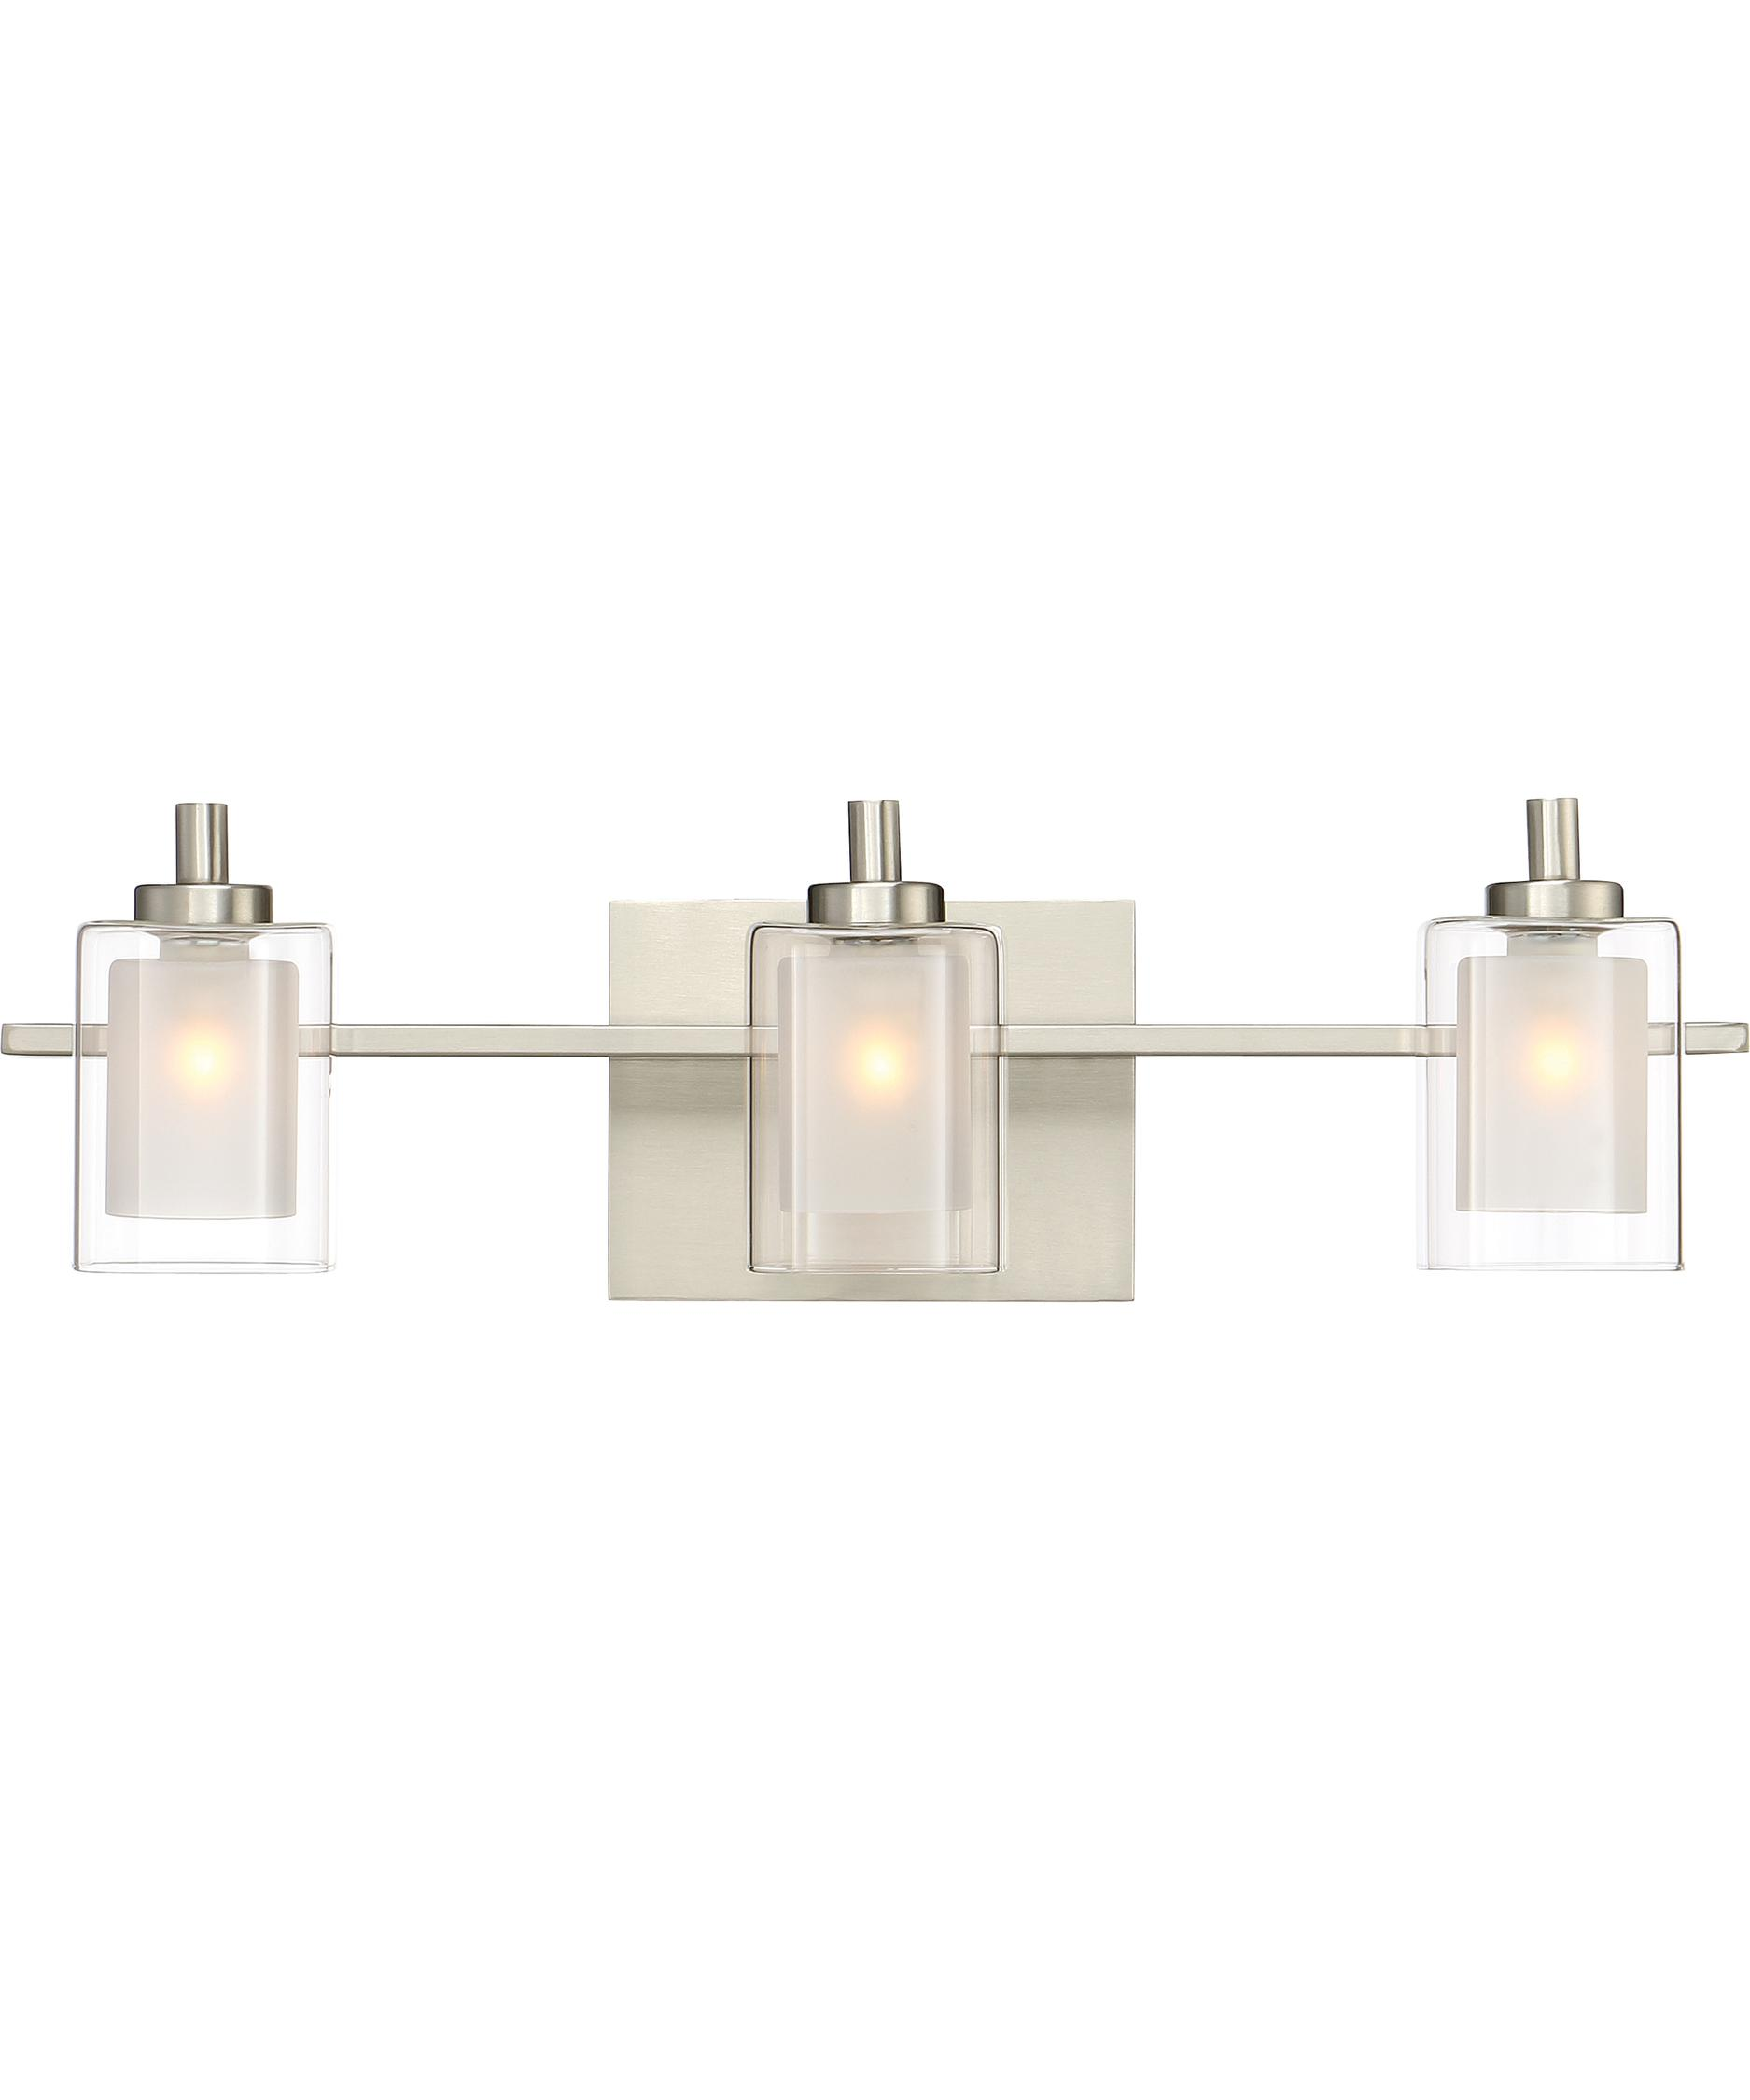 Bathroom Vanity Lights On Sale quoizel klt8603 kolt 21 inch wide bath vanity light | capitol